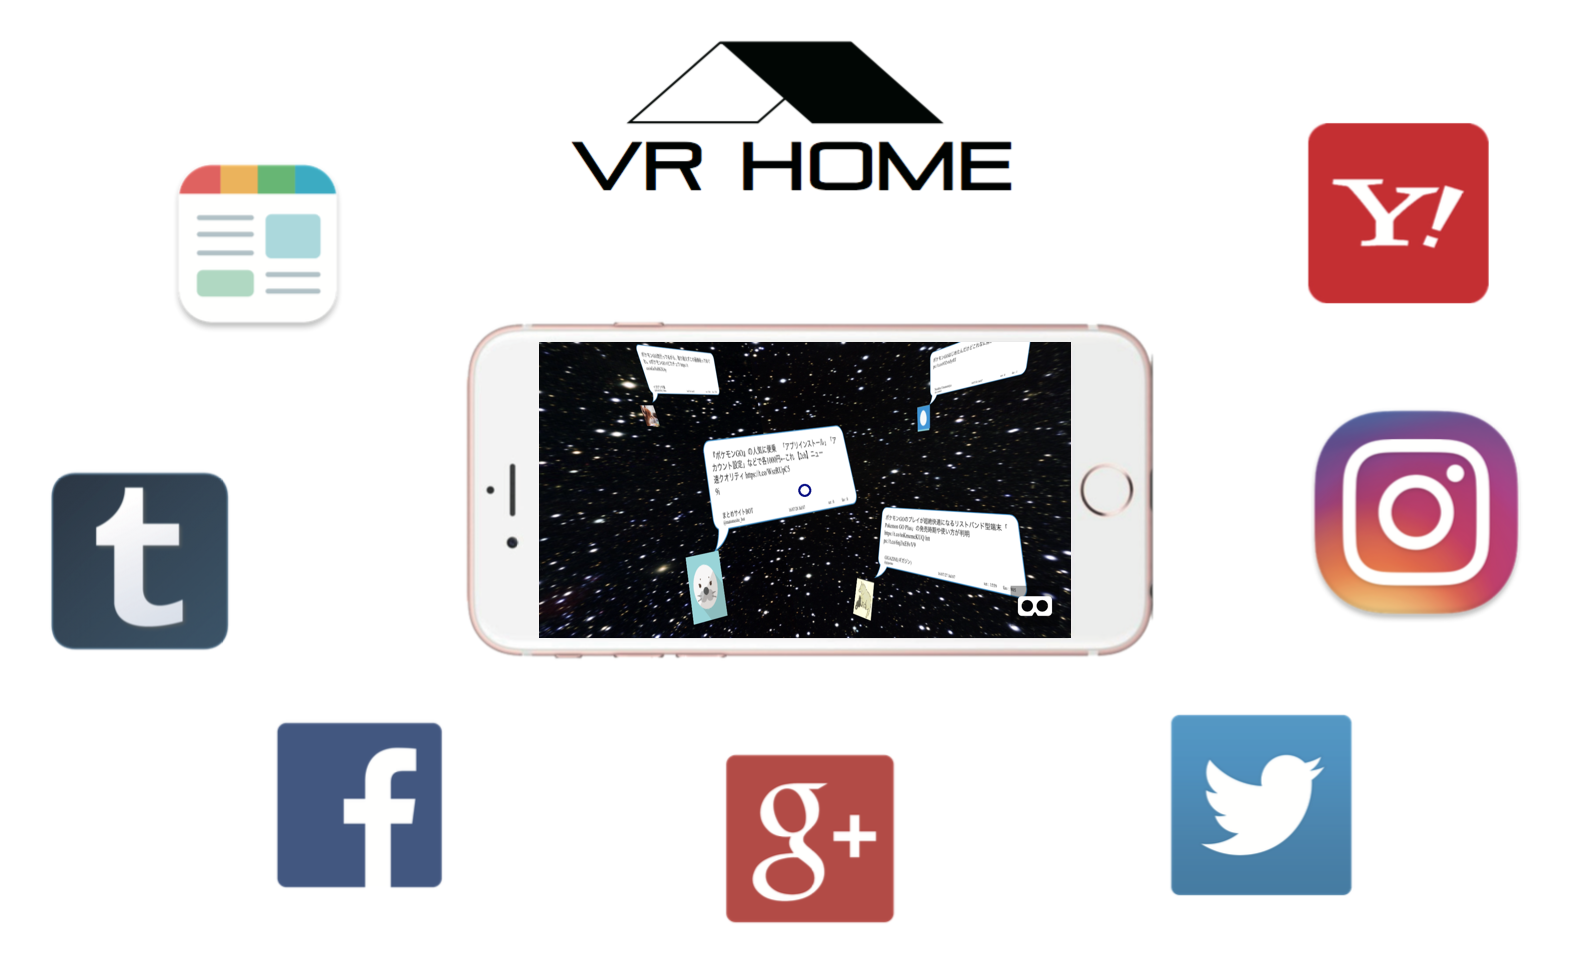 VR HOME BY A-FLAME